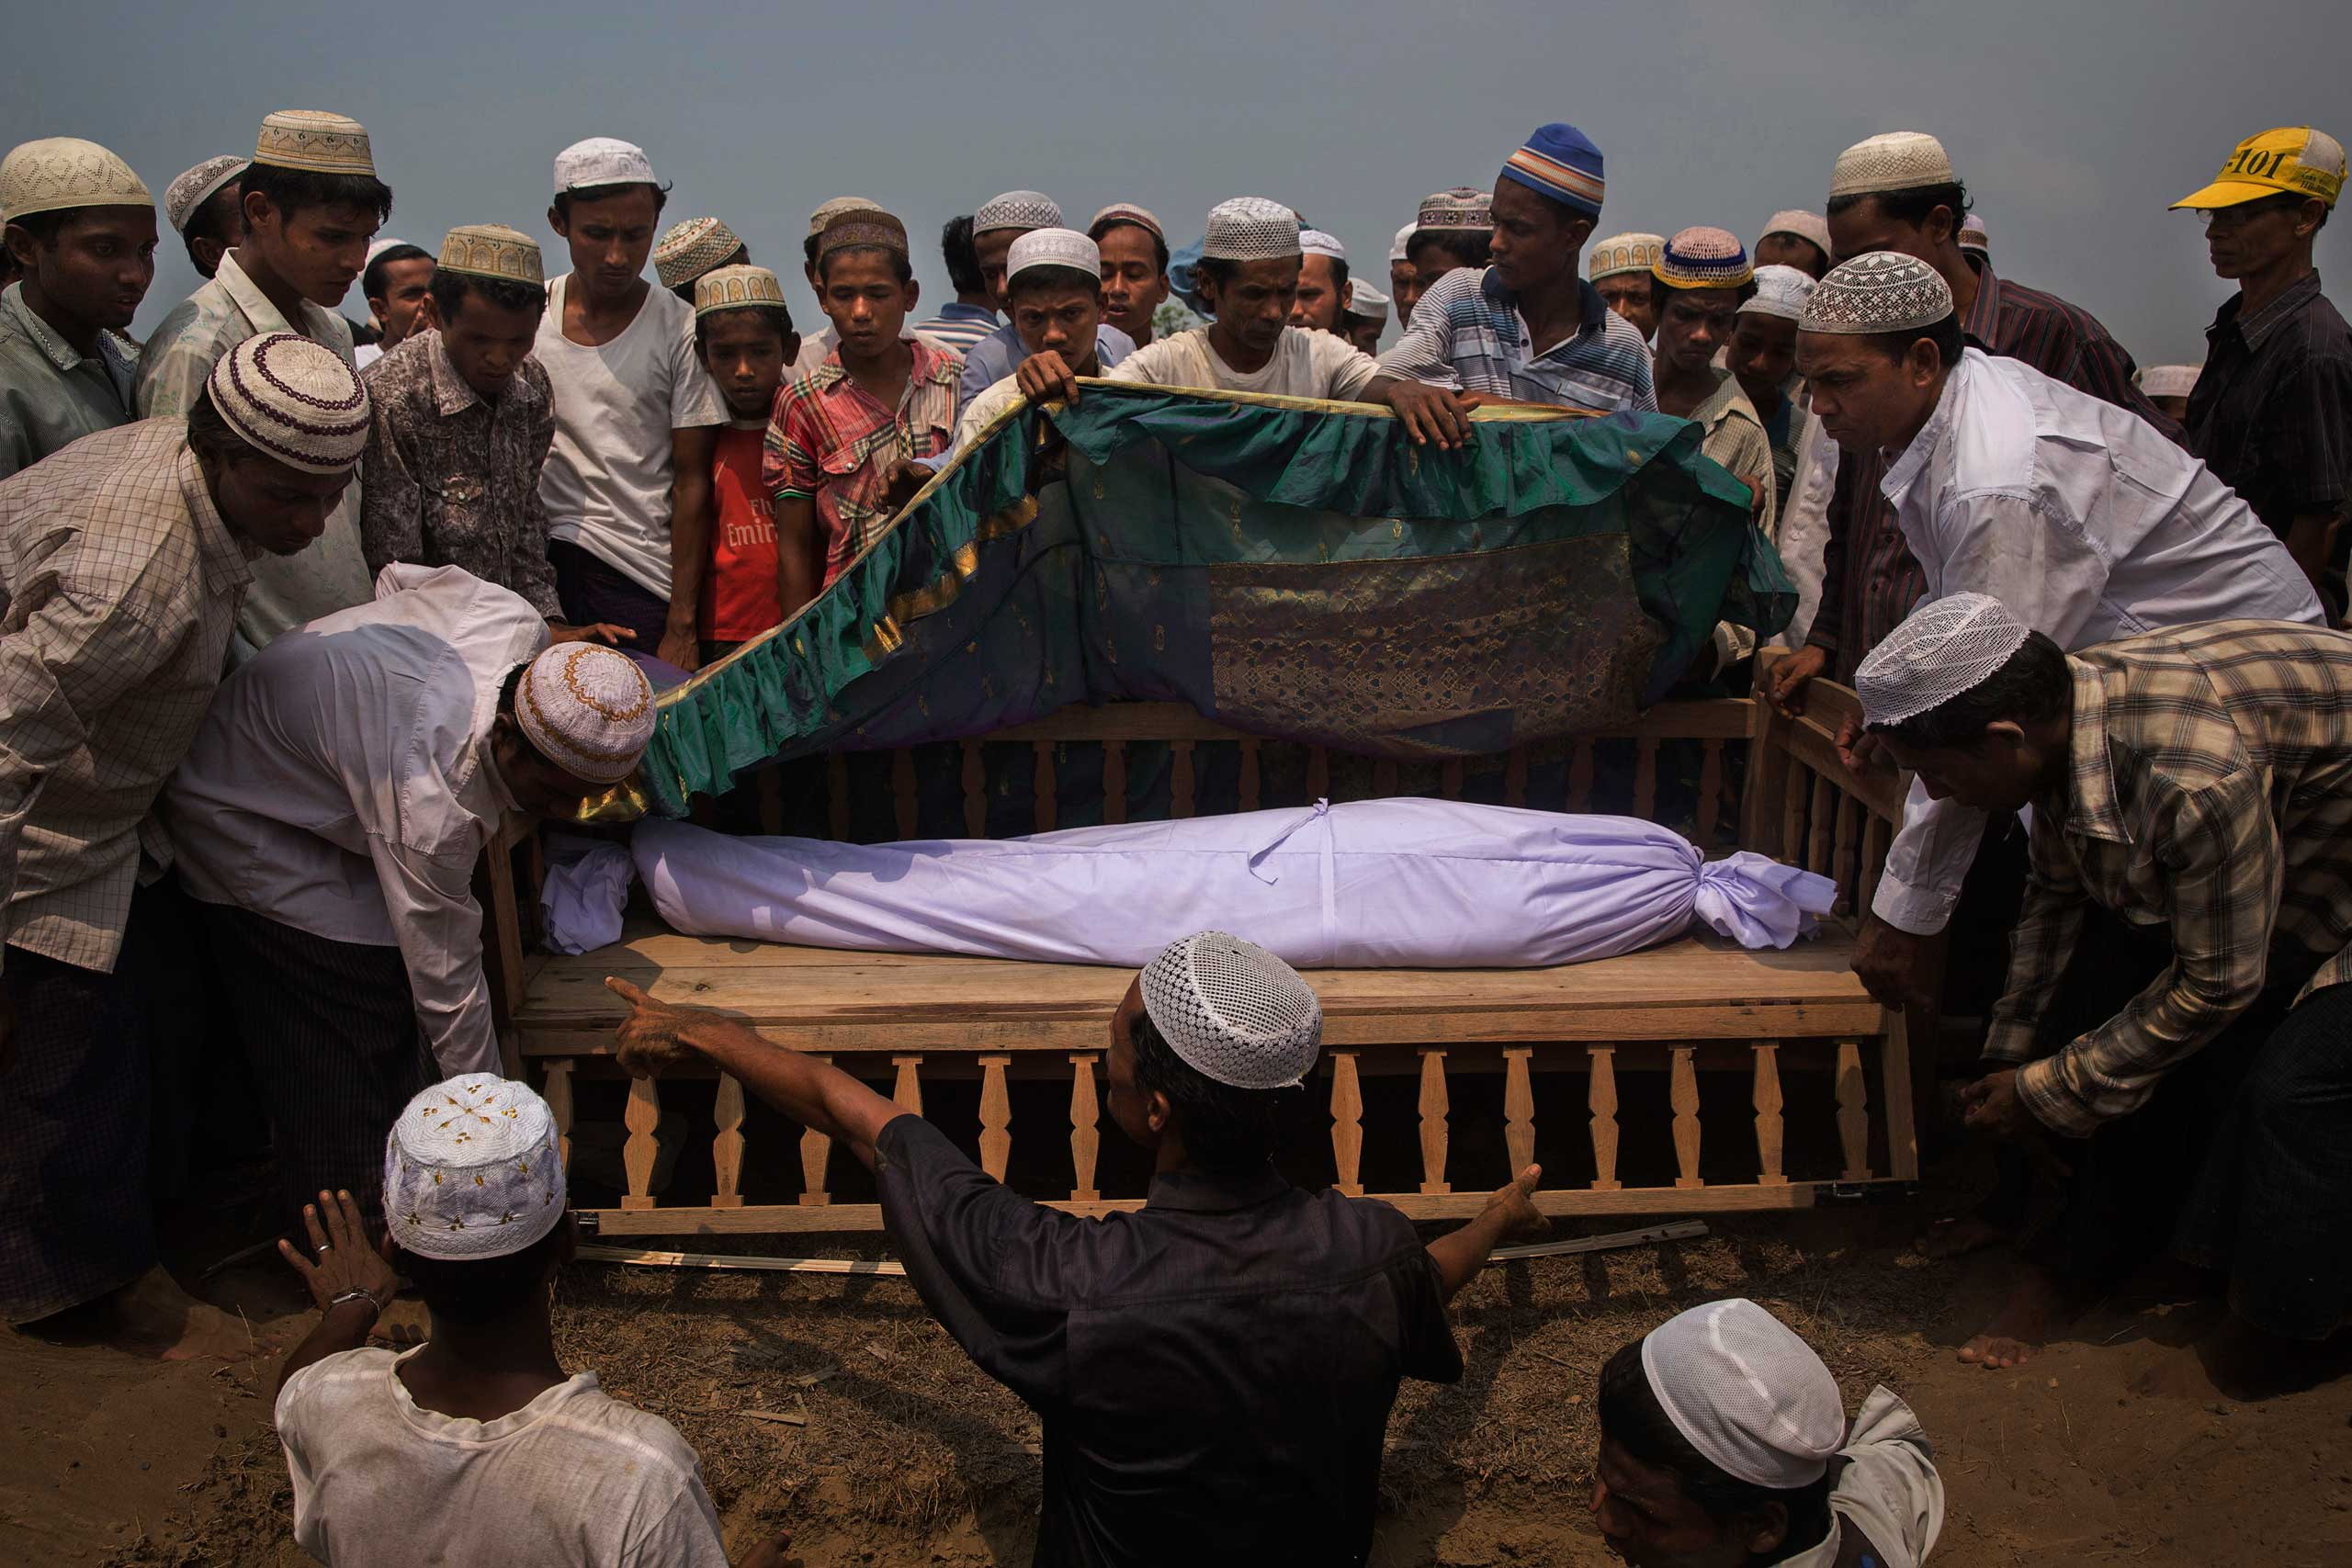 The body of Nur Husain, who died after suffering from a respiratory condition, is buried near his home in a camp near Sittwe, Myanmar. The Rohingya are a Muslim minority persecuted by Myanmar's Buddhist-led government, April 20, 2014.